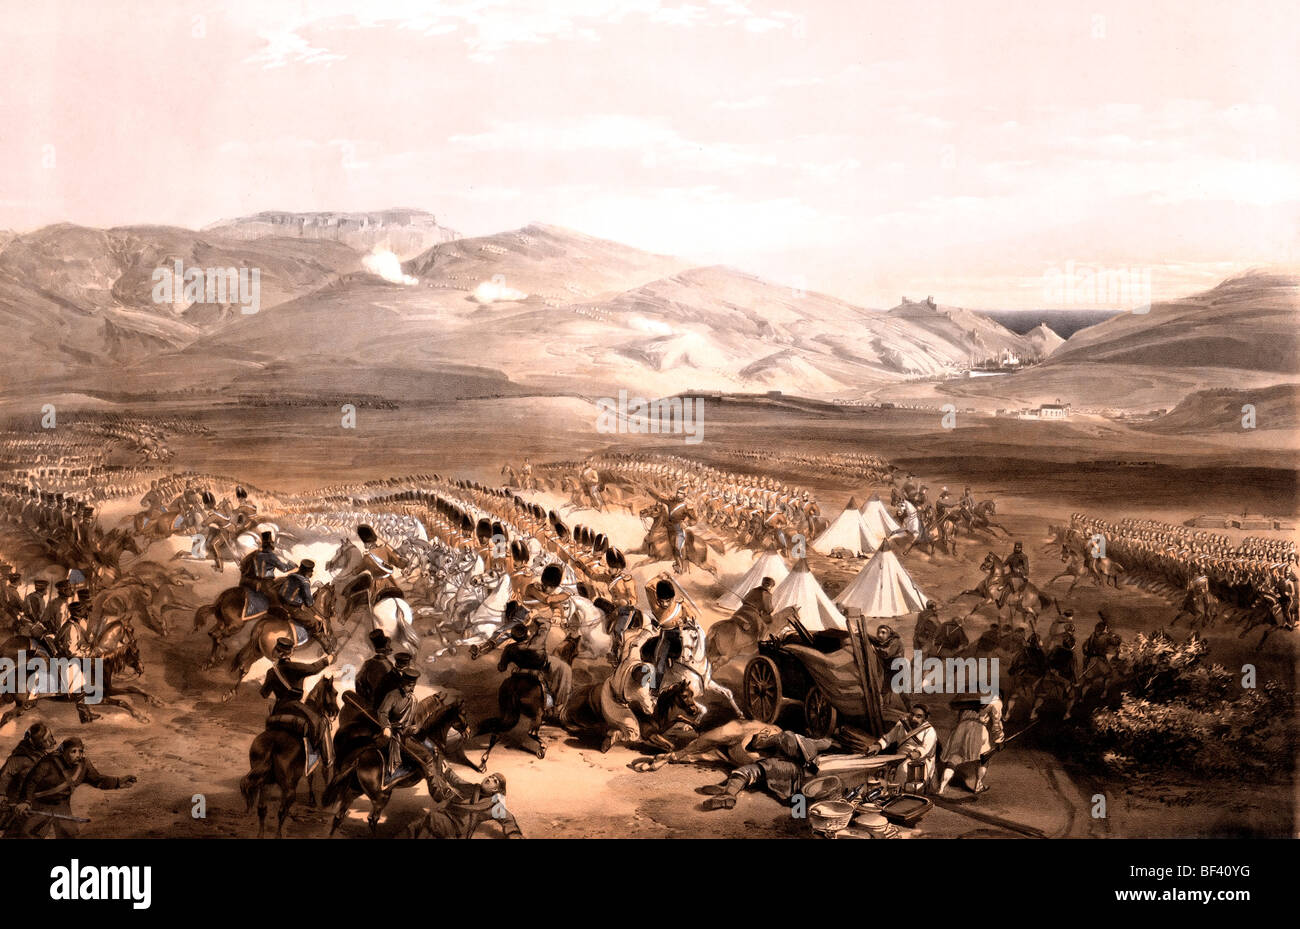 Charge of the heavy cavalry brigade, 25th October 1854 during the Crimean War - Stock Image